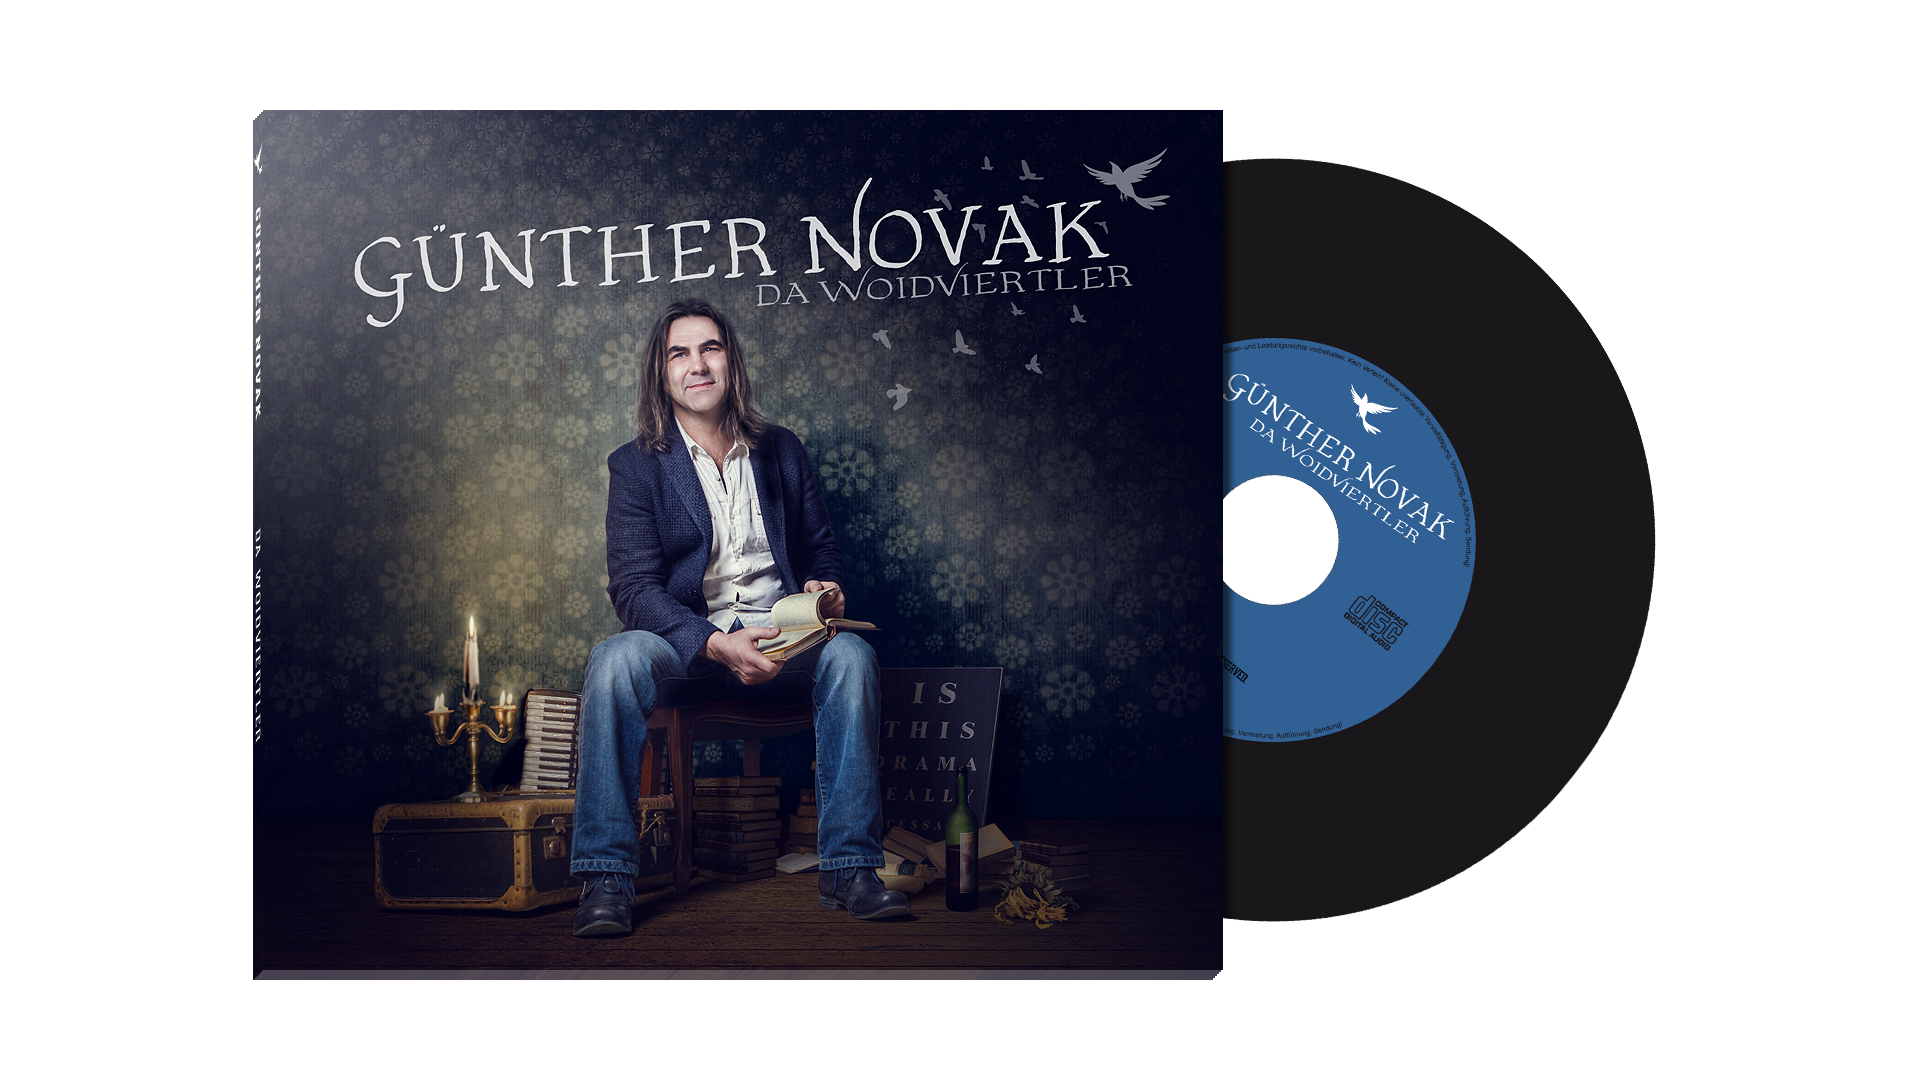 CD Da Woidvierlter Günther Novak